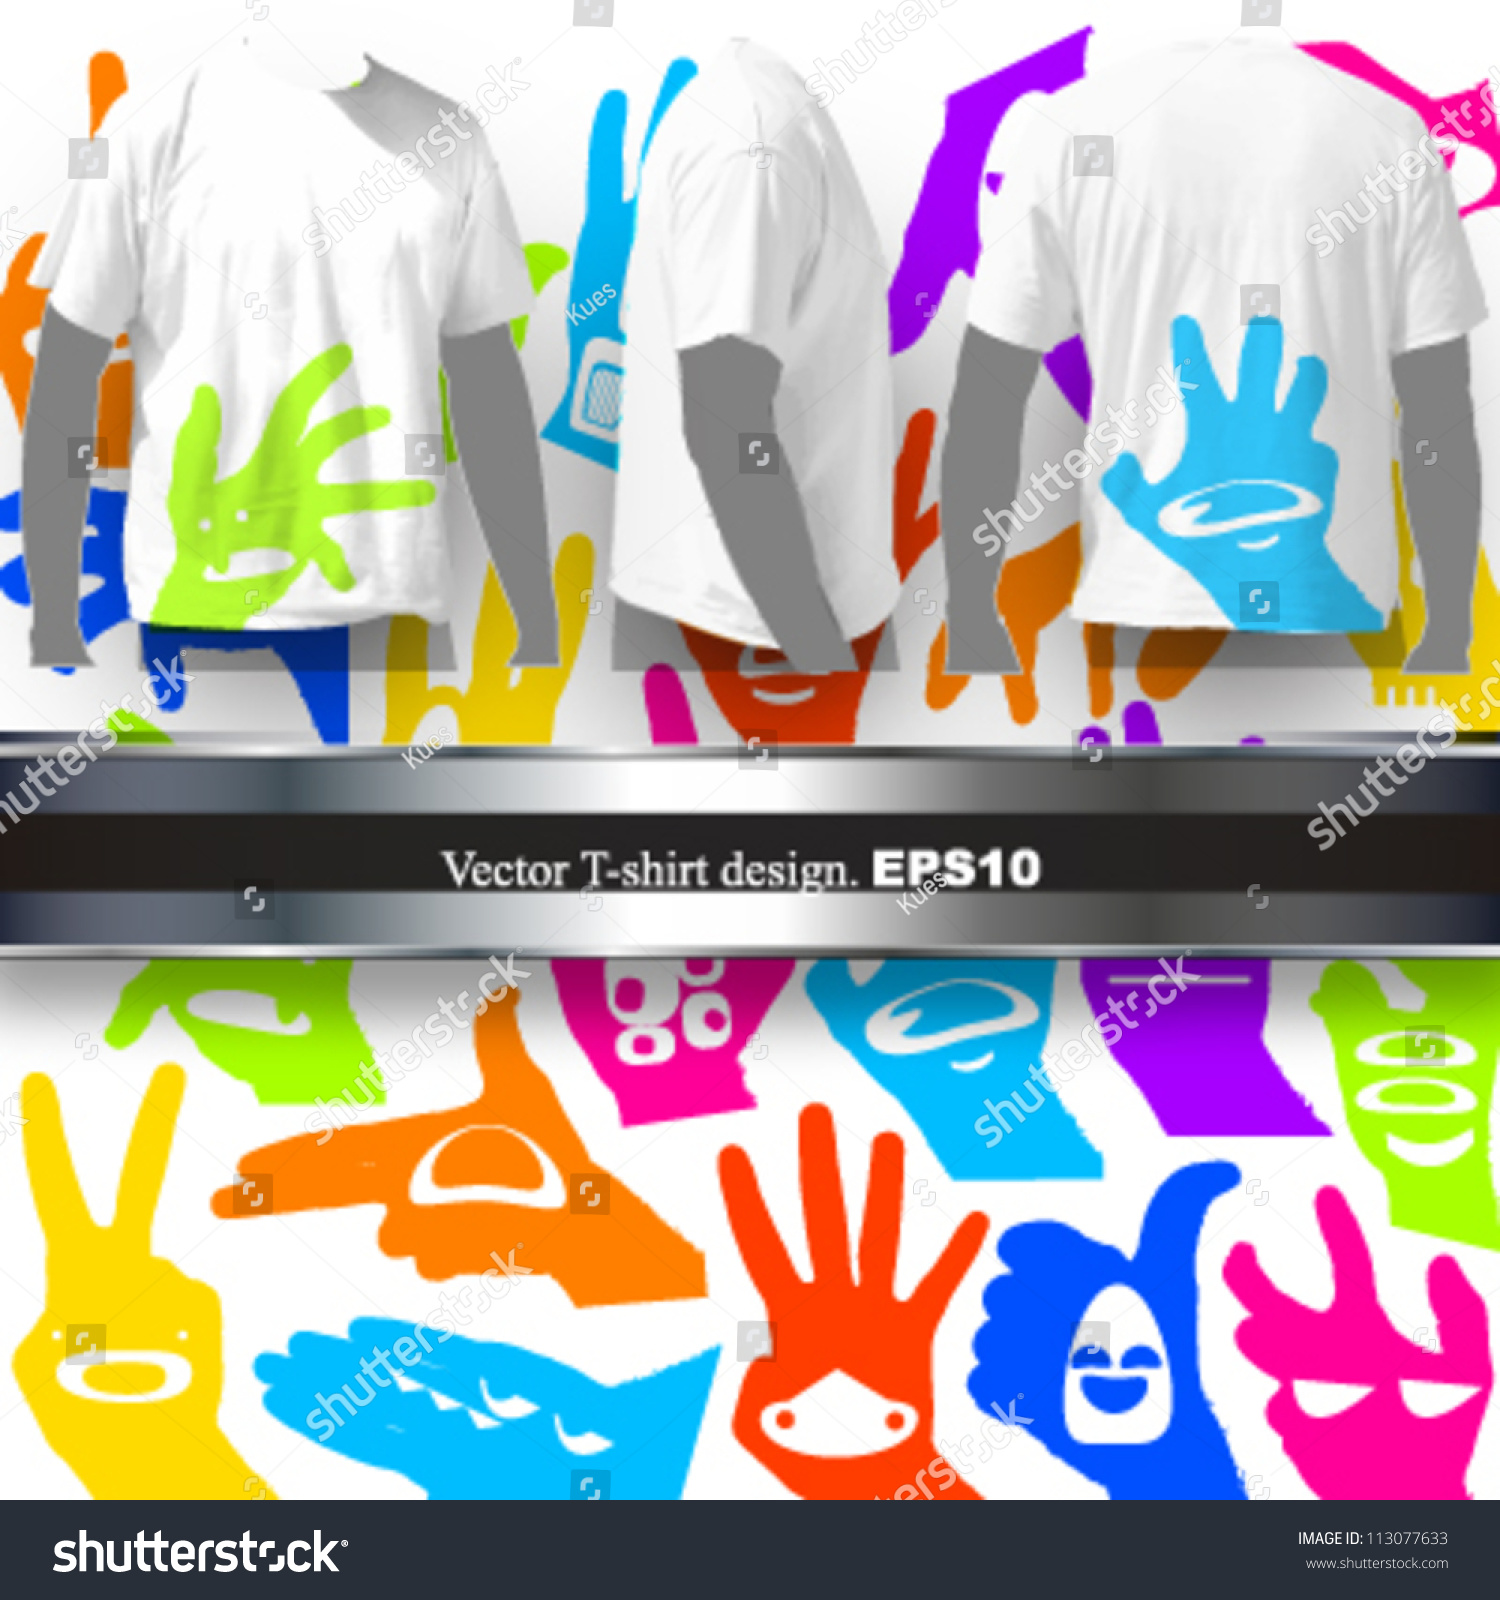 T shirt design vector picture 113077633 shutterstock for Shutterstock t shirt design